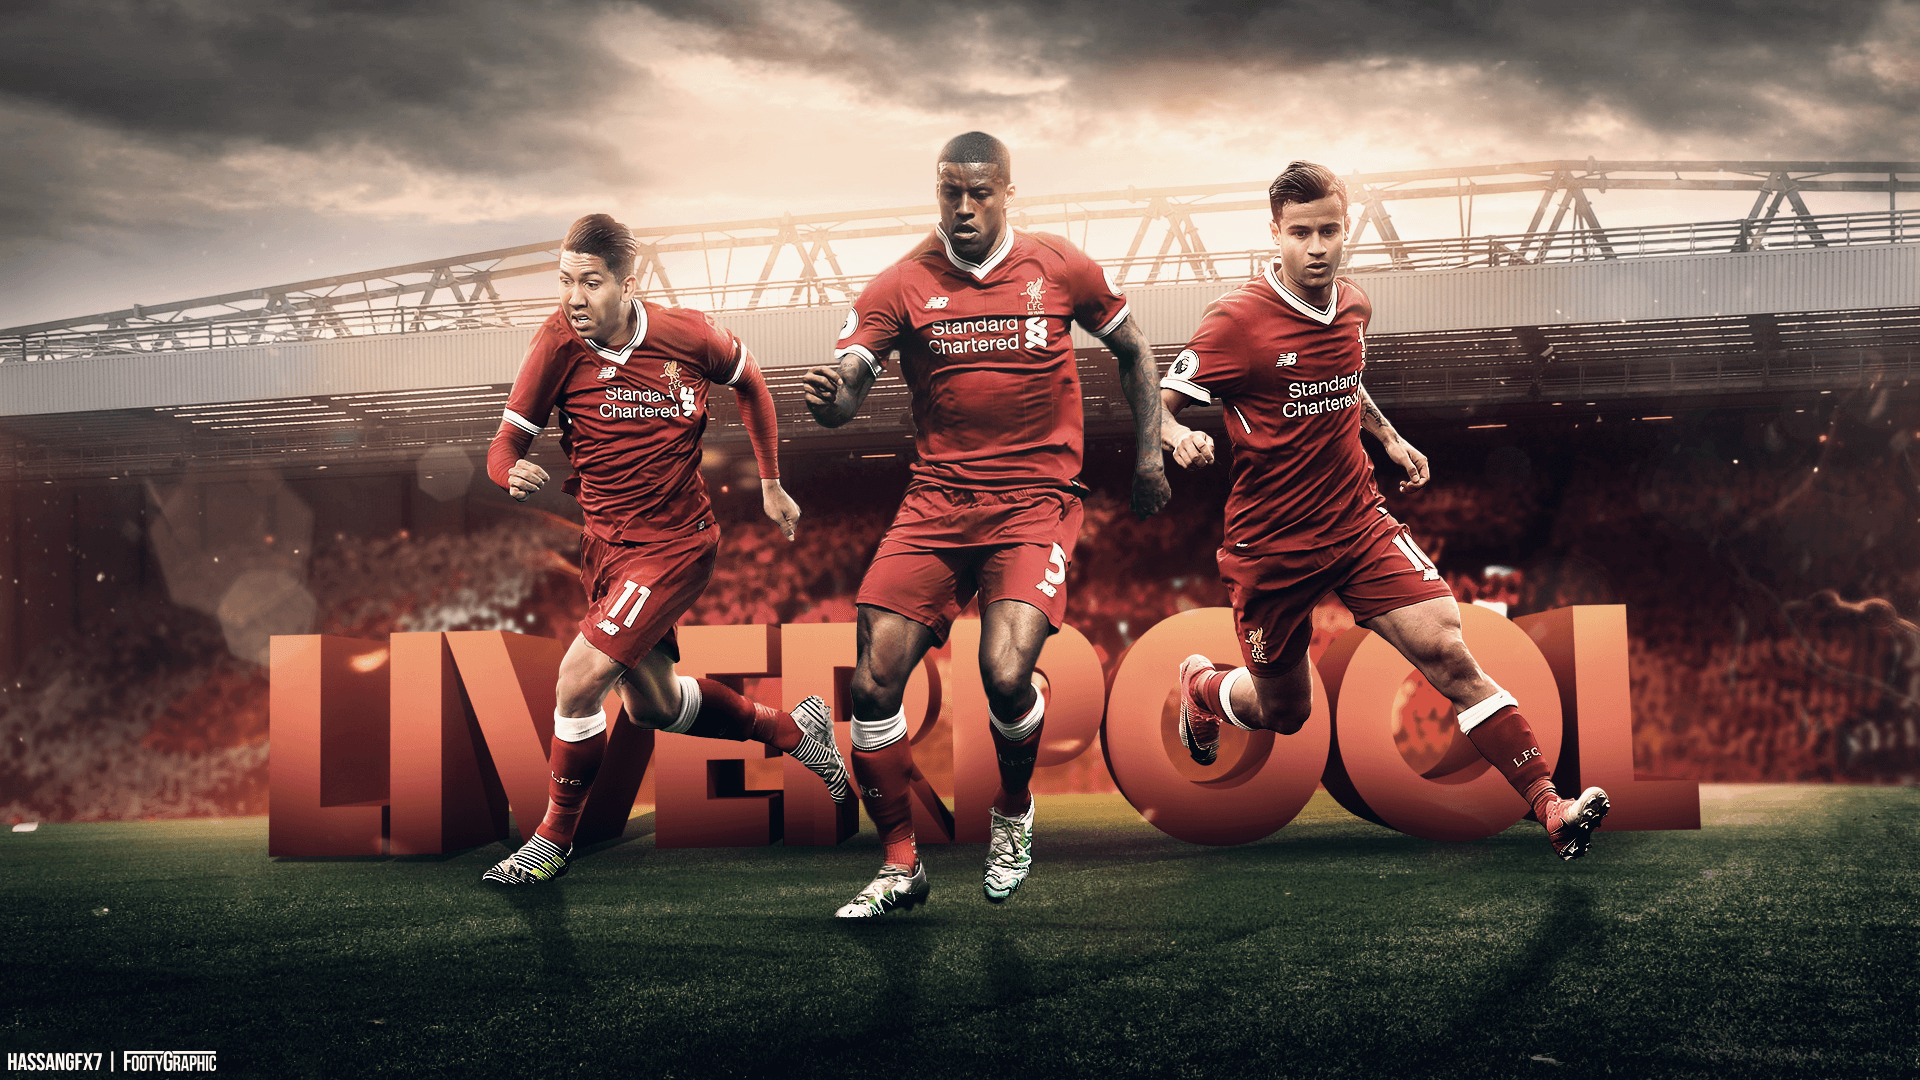 Liverpool Players 2018 Wallpapers